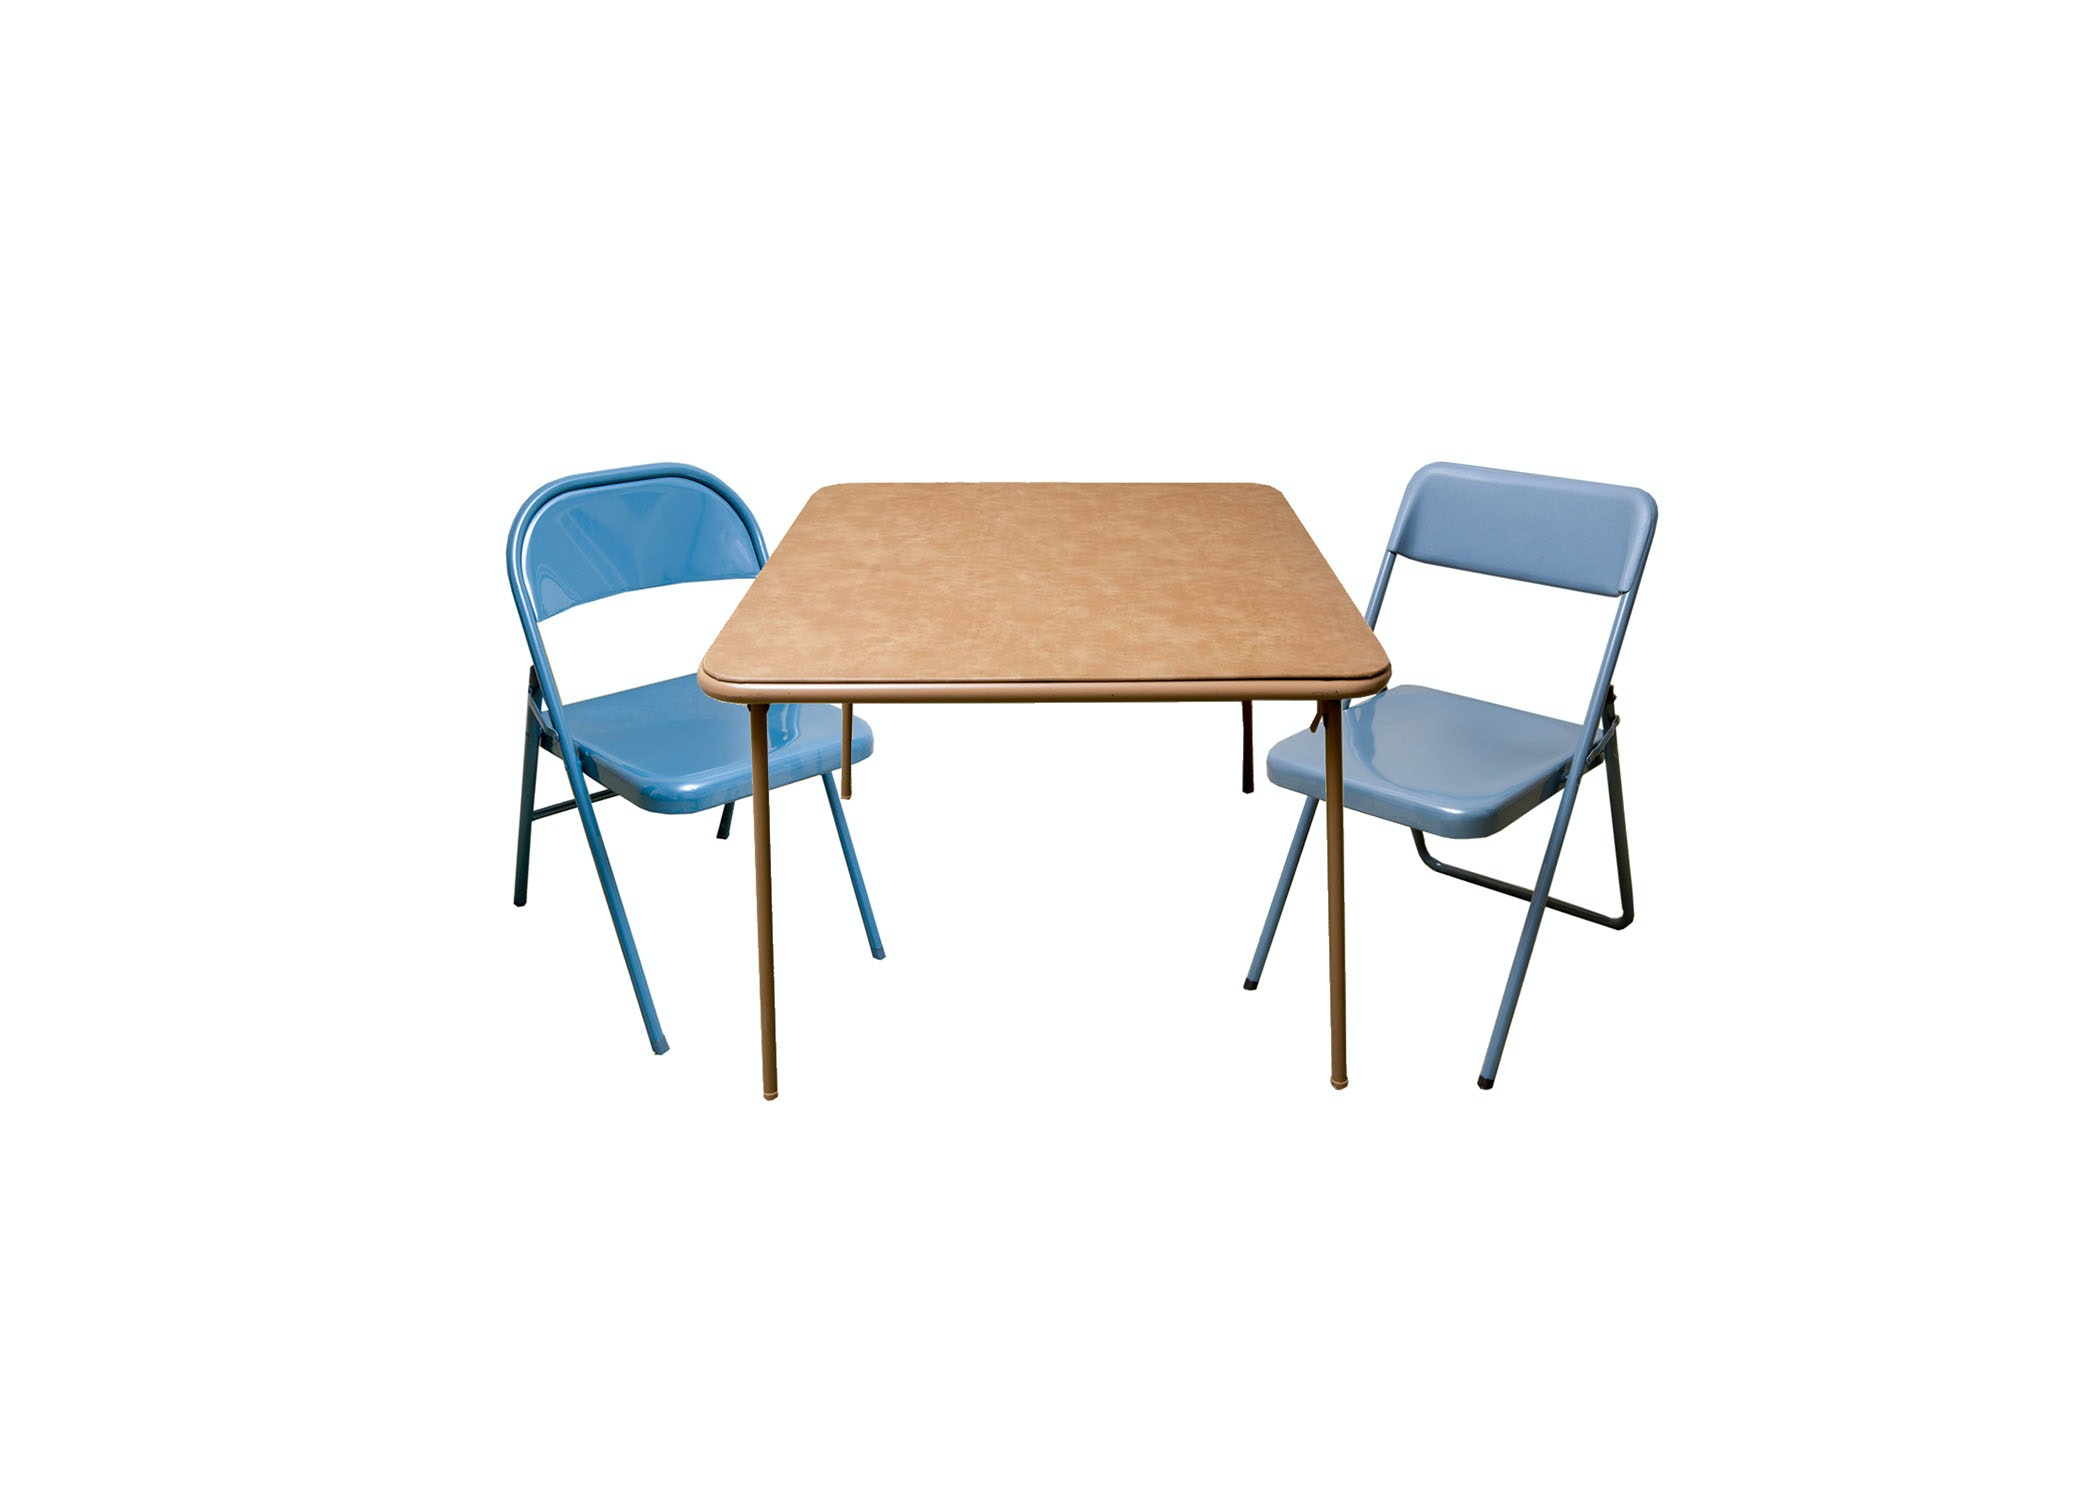 Folding Table and Chairs by Cosco and Kmart EBTH